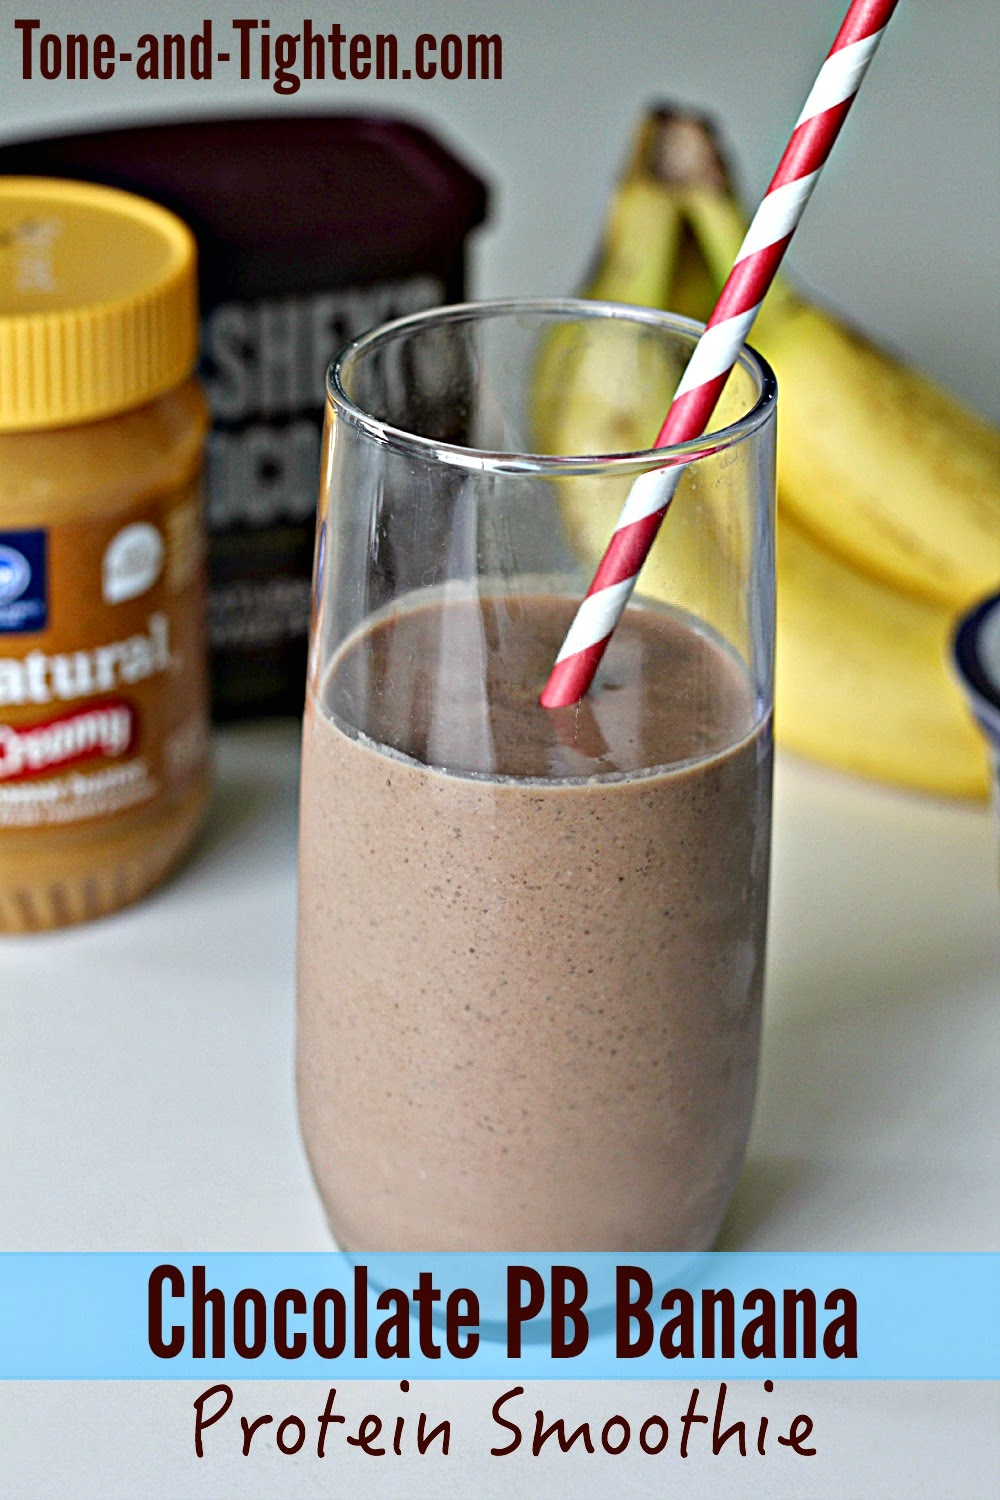 Chocolate Peanut Butter Banana Protein Smoothie Recipe (Fitness ...